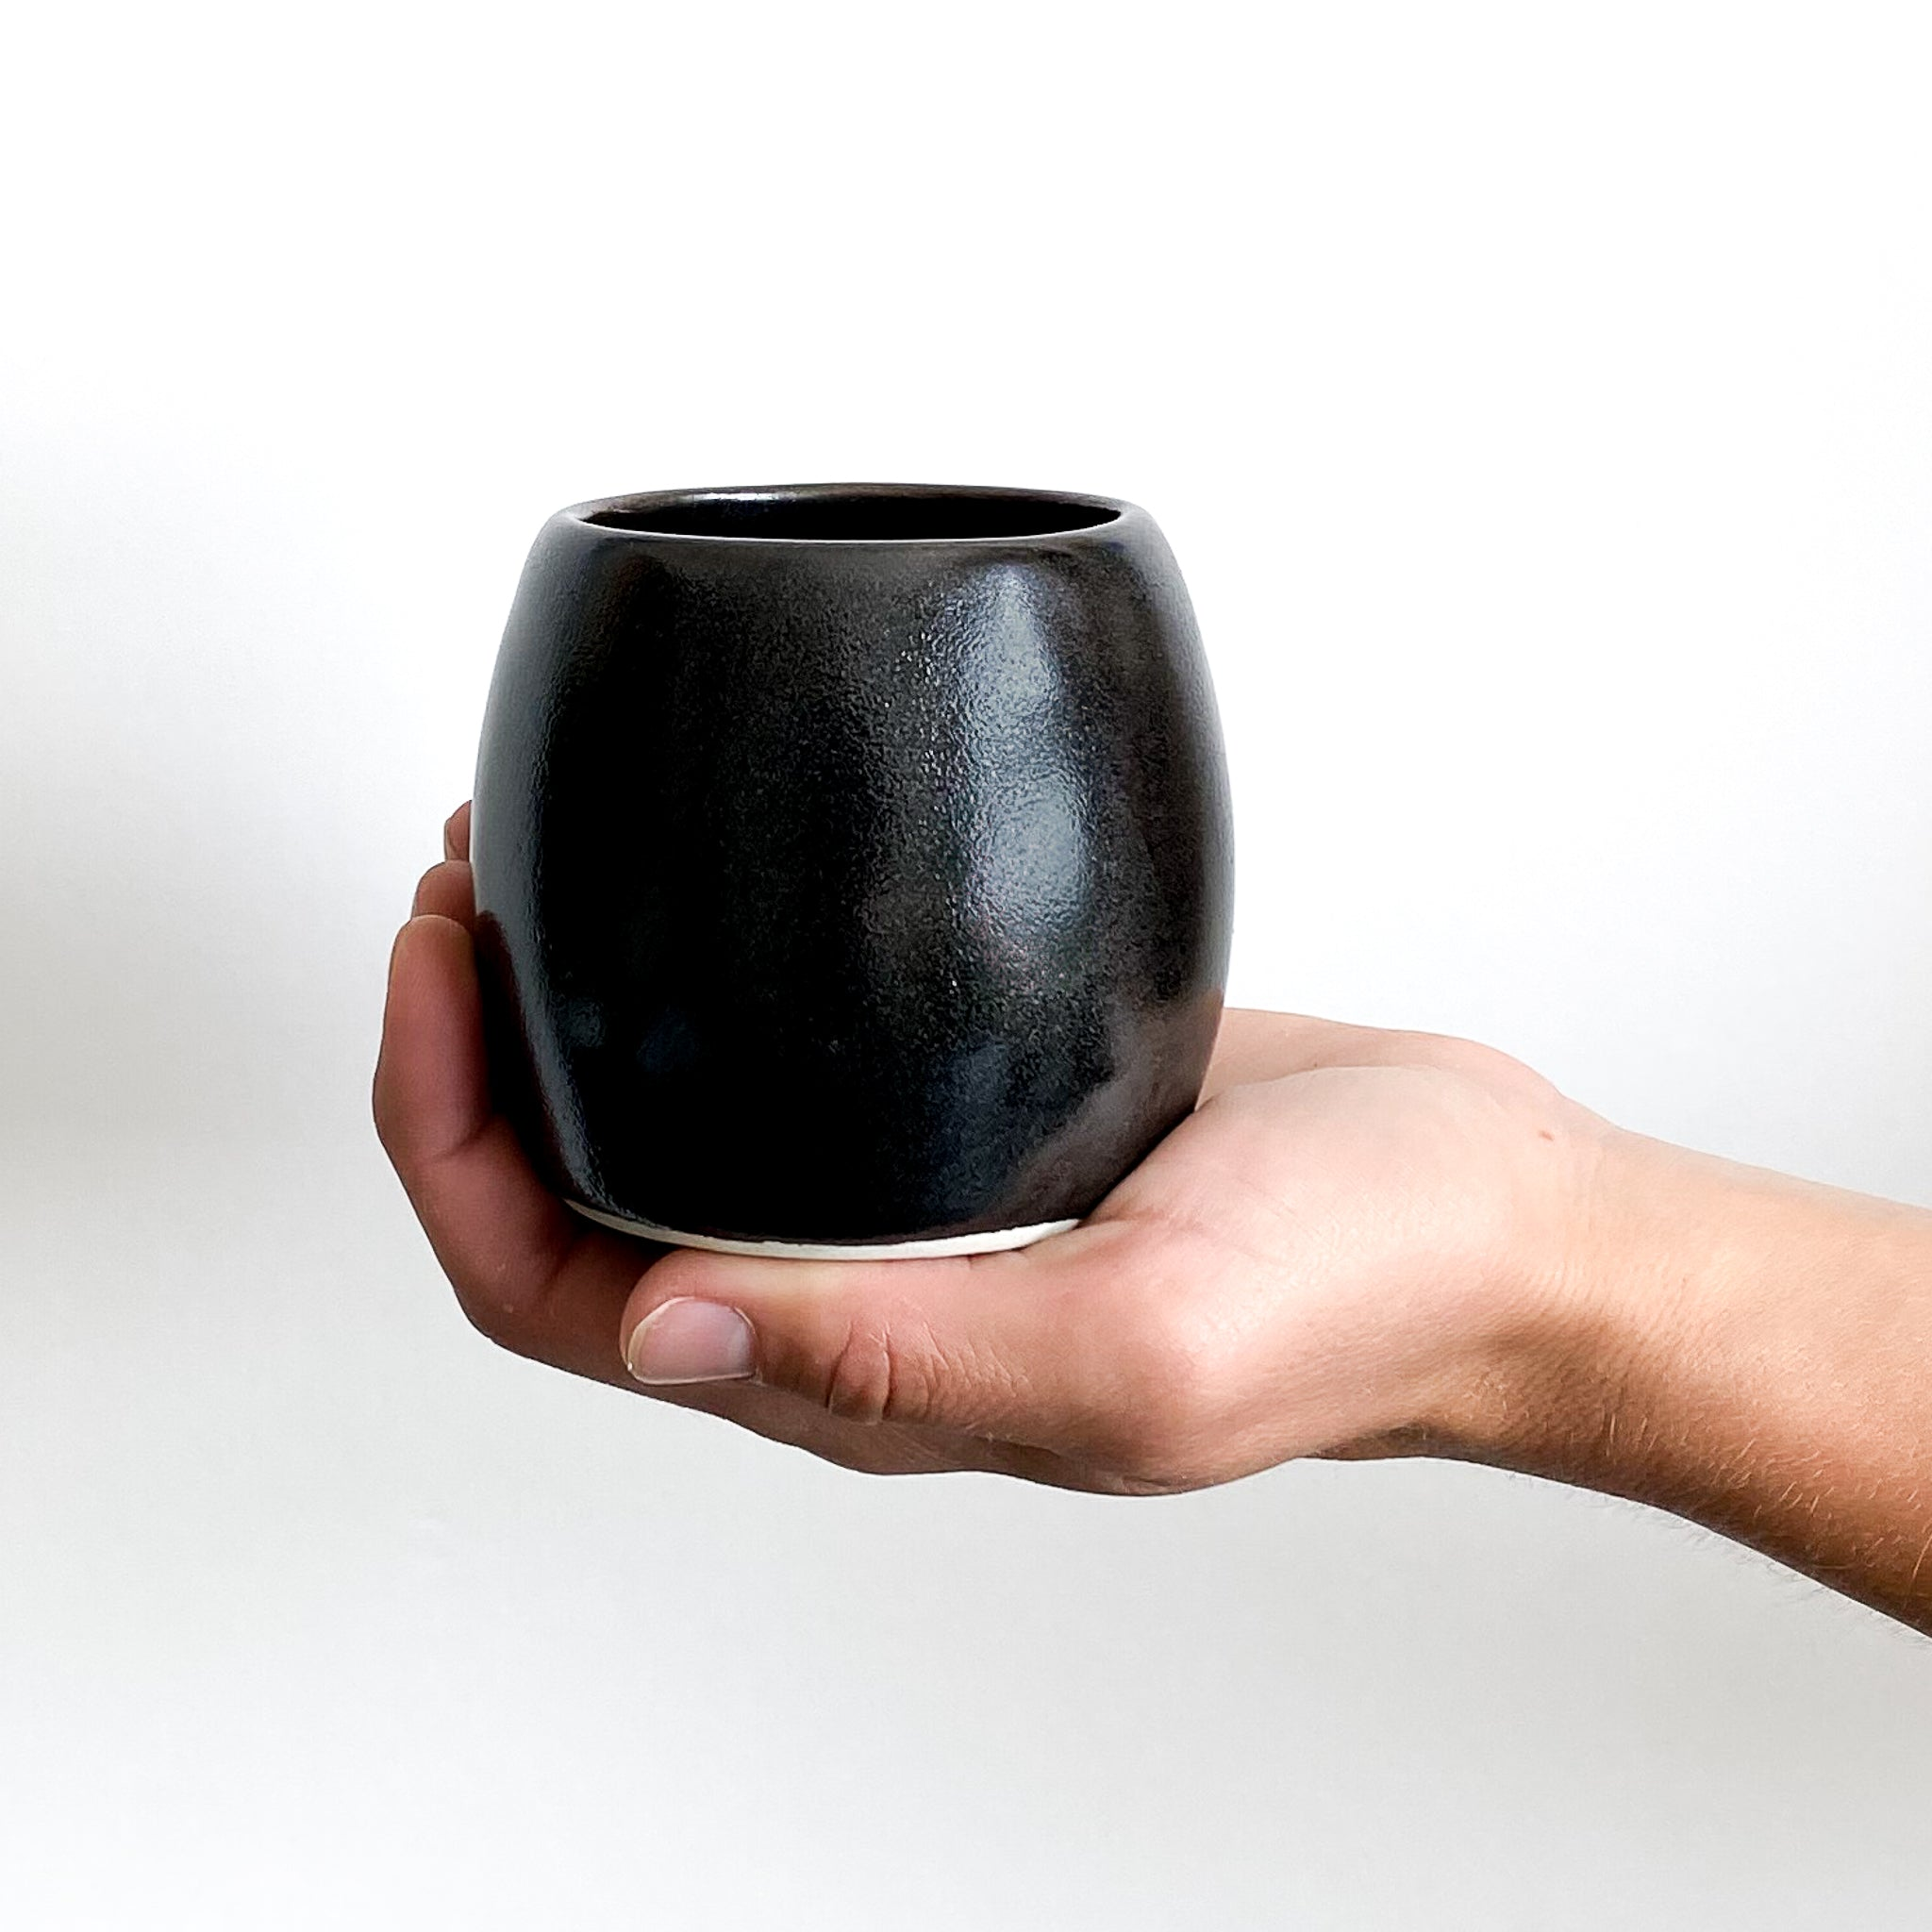 A hand holding a single black porcelain clay Yunomi cup against a white wall.